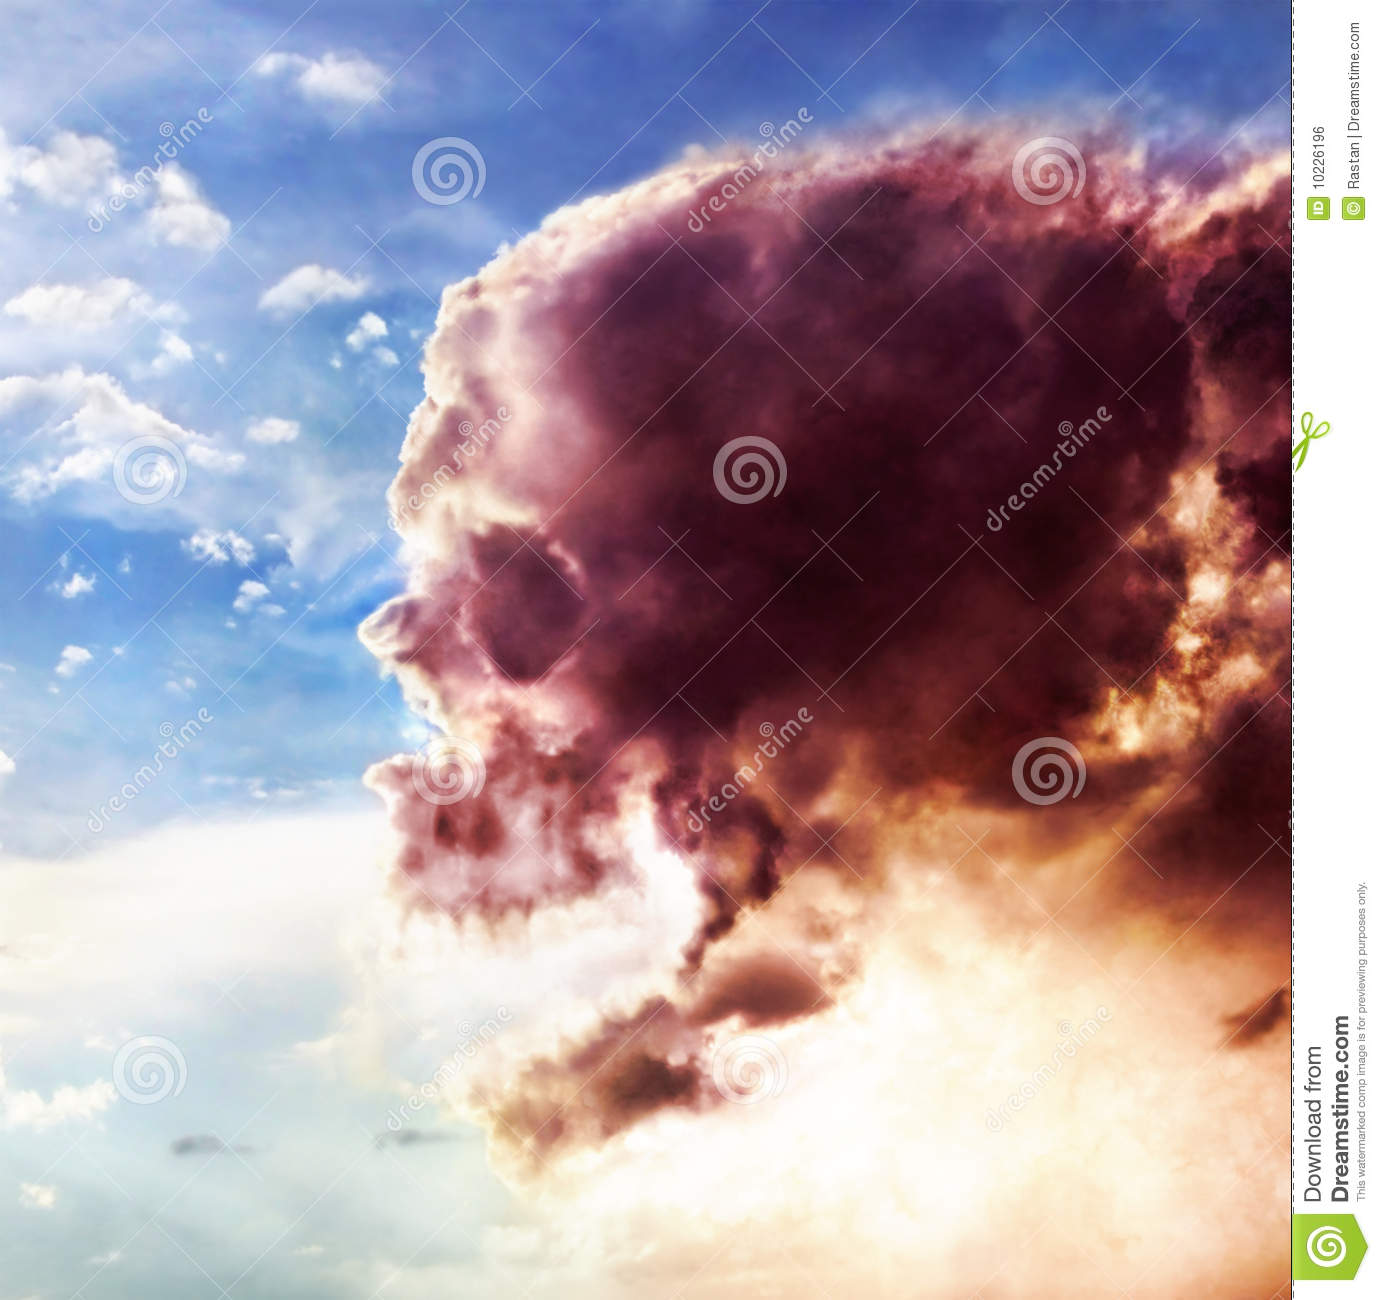 Forces Of Evil Royalty Free Stock Image Image 10226196